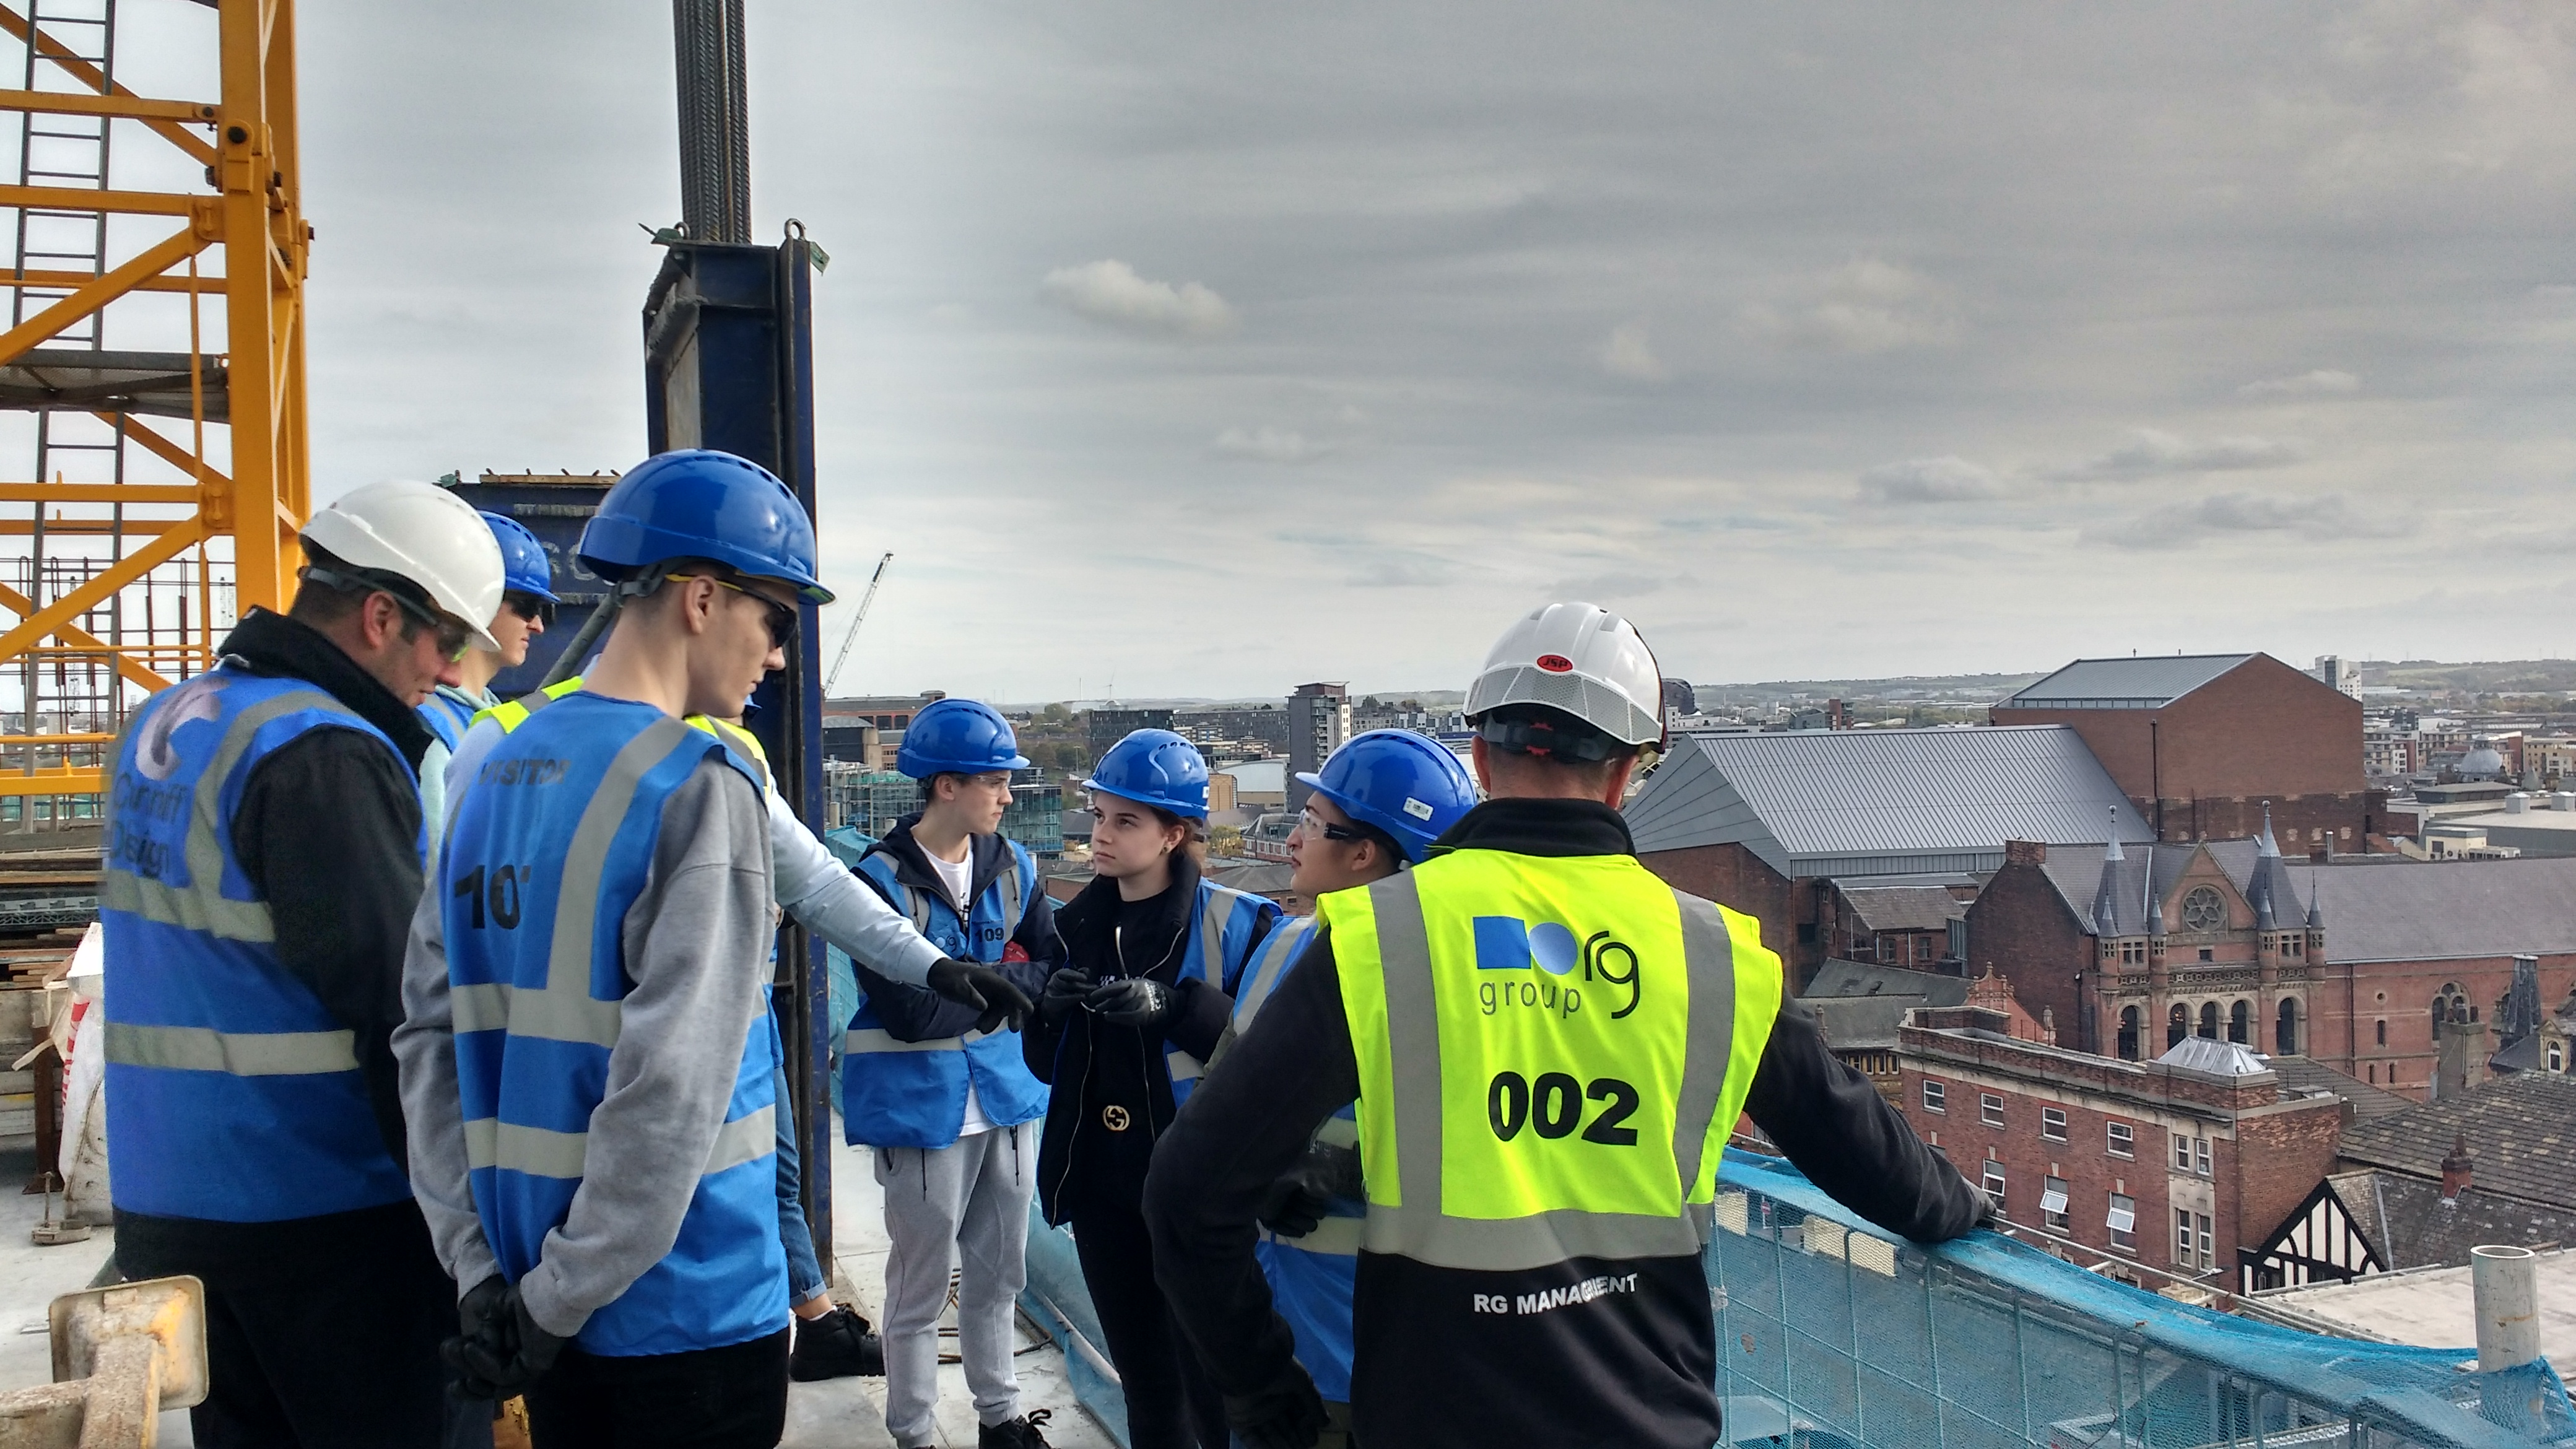 Students on the roof of new building